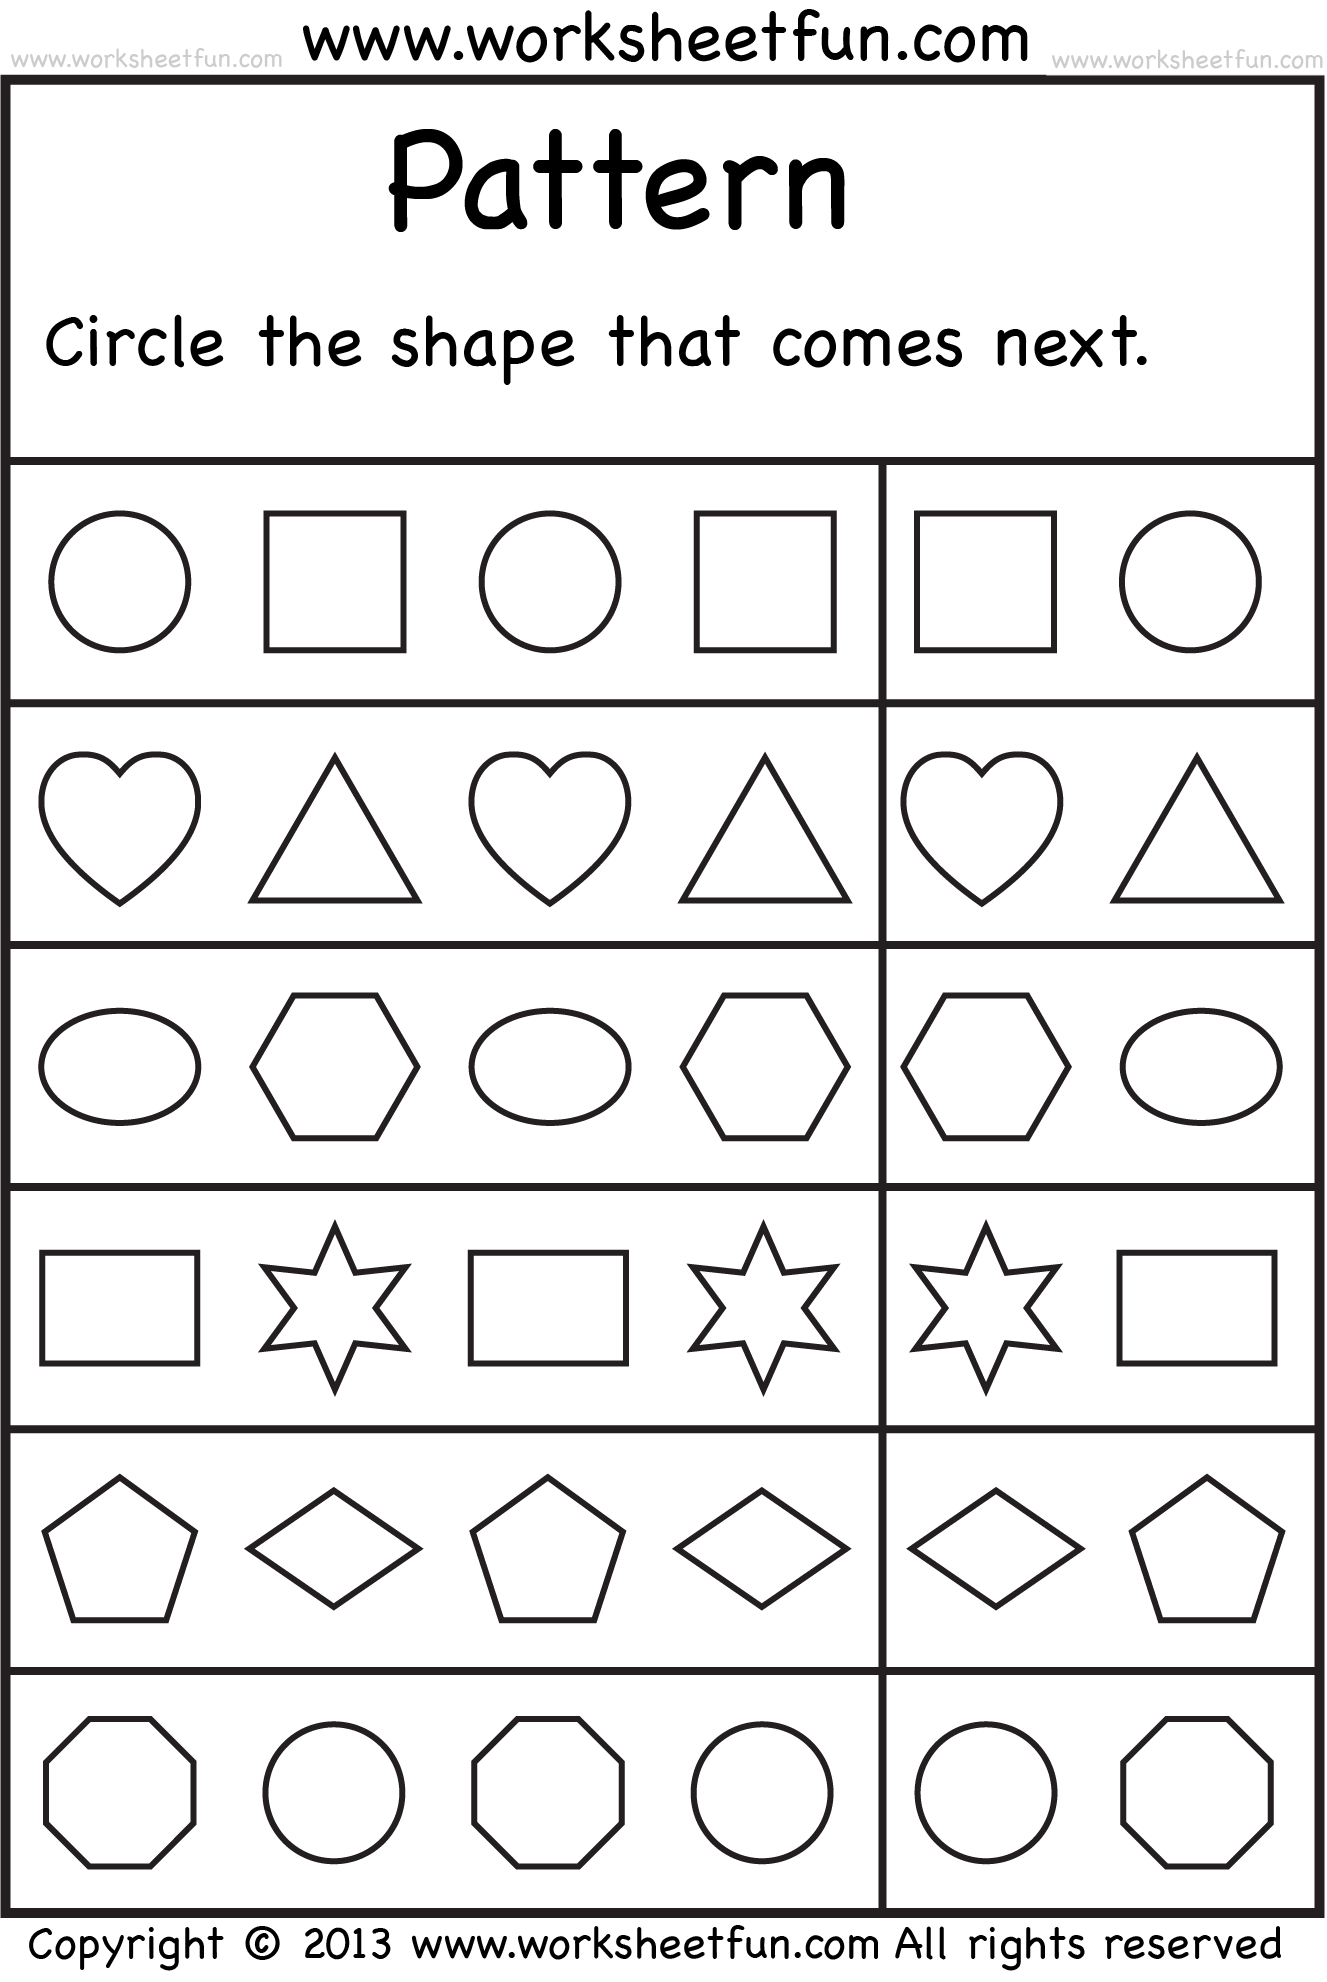 Aldiablosus  Outstanding  Images About School Worksheets On Pinterest  Number Words  With Glamorous  Images About School Worksheets On Pinterest  Number Words Alphabet Worksheets And Free Printable Kindergarten Worksheets With Captivating Verbs Worksheets Grade  Also Fun Fraction Worksheet In Addition Scalene Isosceles Equilateral Worksheet And Commas Worksheet Th Grade As Well As Free Printable Math Word Problem Worksheets Additionally I And Me Worksheet From Pinterestcom With Aldiablosus  Glamorous  Images About School Worksheets On Pinterest  Number Words  With Captivating  Images About School Worksheets On Pinterest  Number Words Alphabet Worksheets And Free Printable Kindergarten Worksheets And Outstanding Verbs Worksheets Grade  Also Fun Fraction Worksheet In Addition Scalene Isosceles Equilateral Worksheet From Pinterestcom